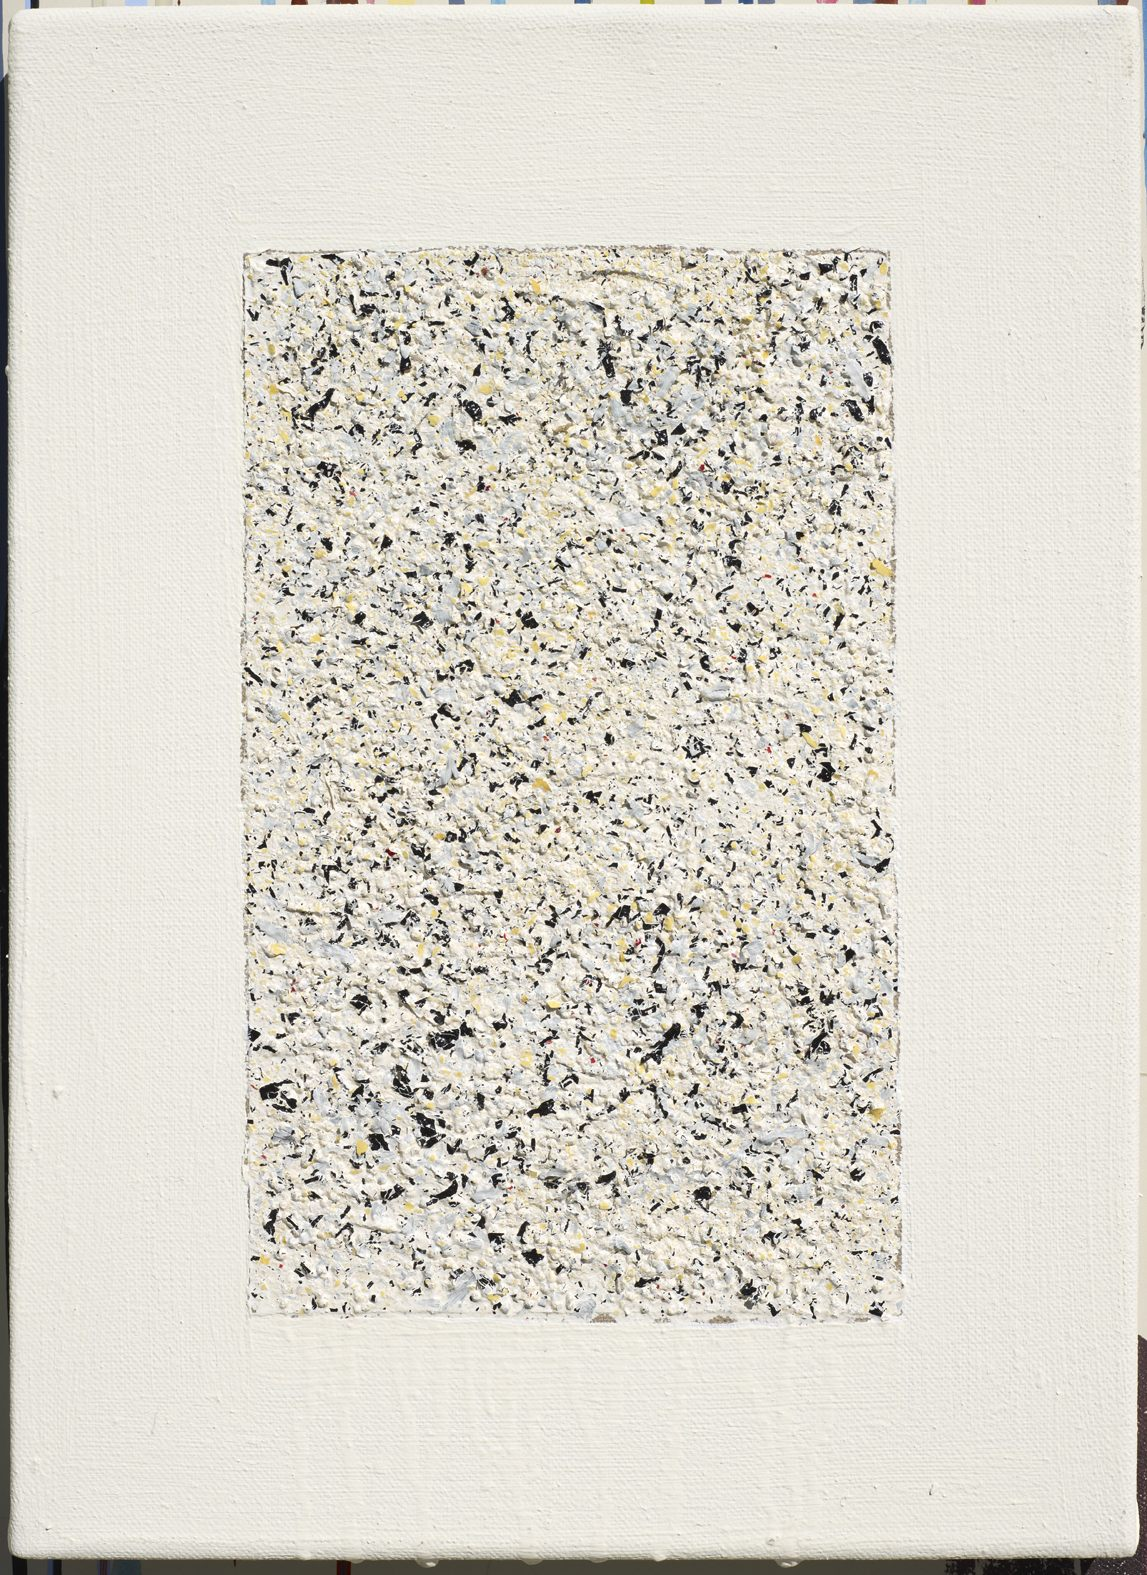 Eveline Kotai - Cosmos 1, 2010, paint flakes on linen, 30x20cm